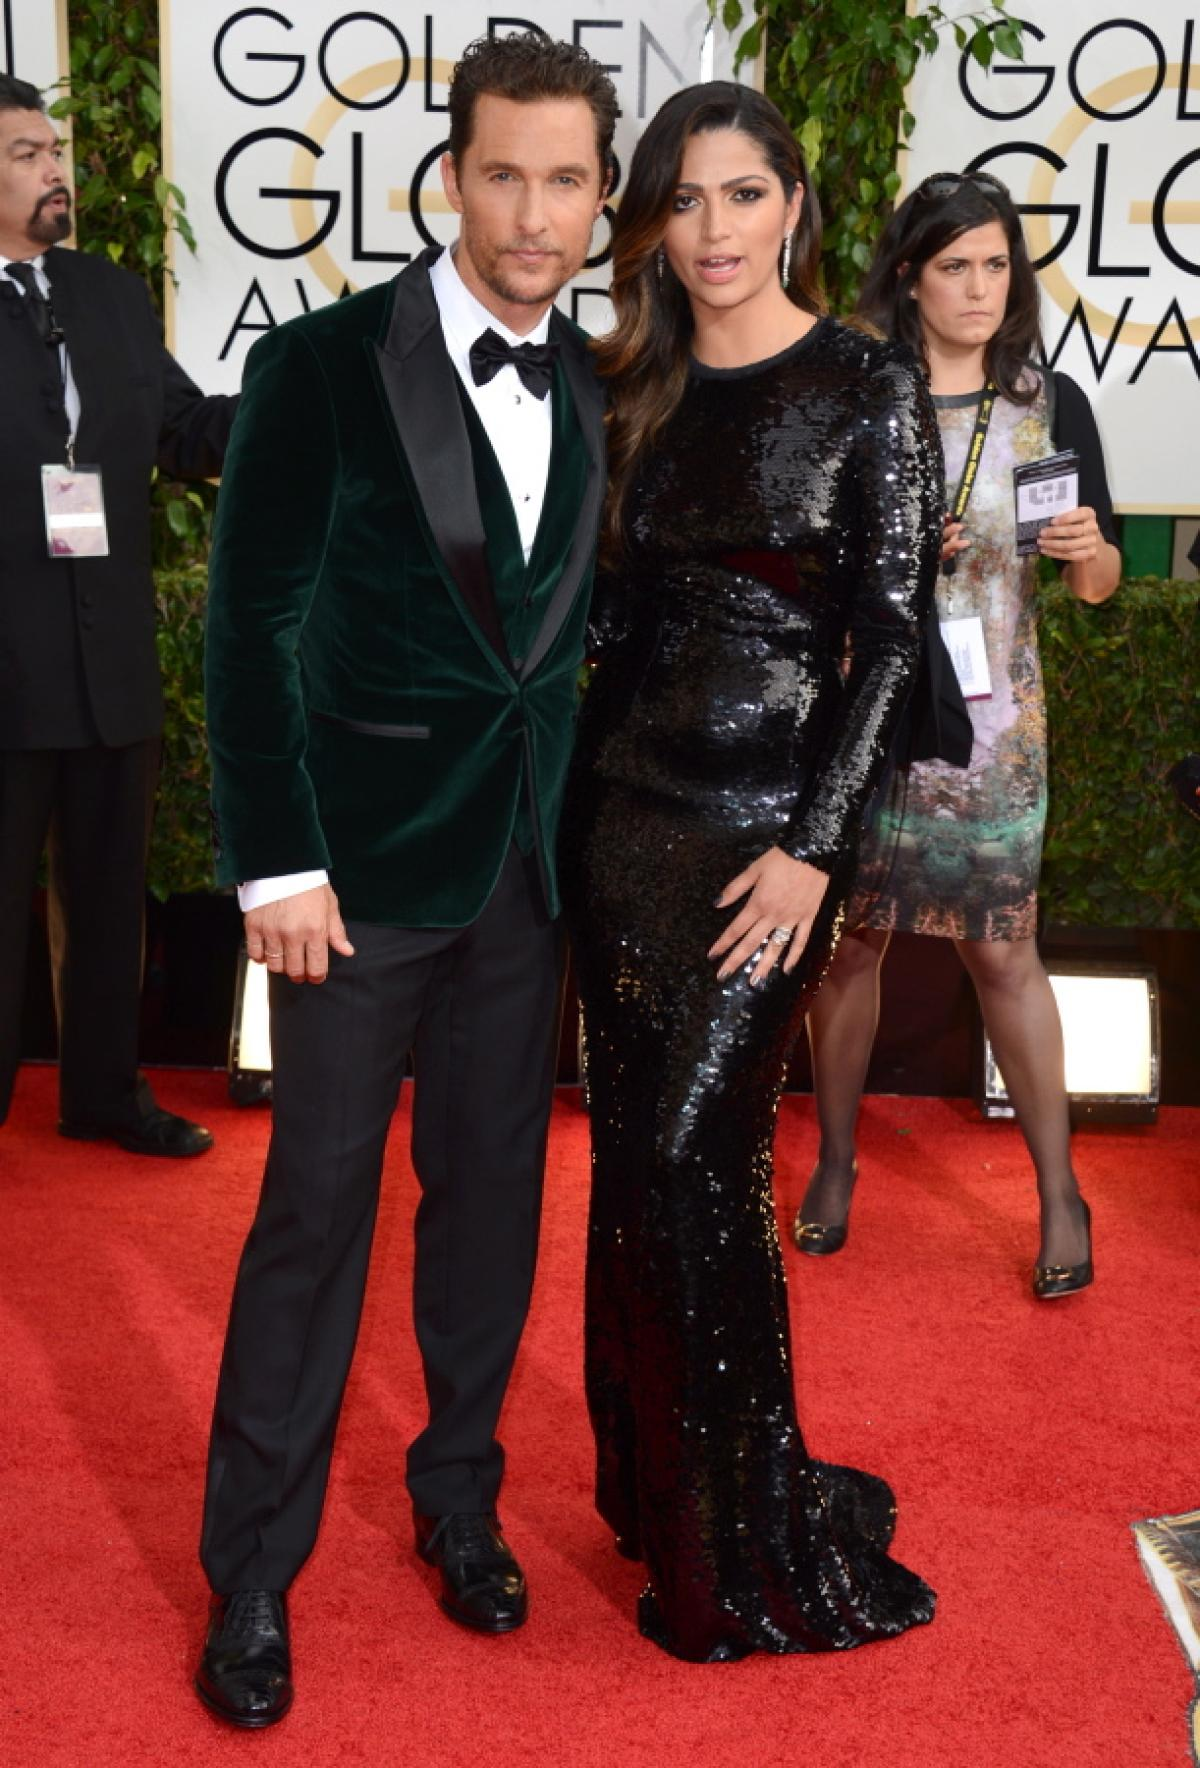 Matthew Mcconaughey in a green velvet with black bowtie and Camila Alves in sequin D & G dress